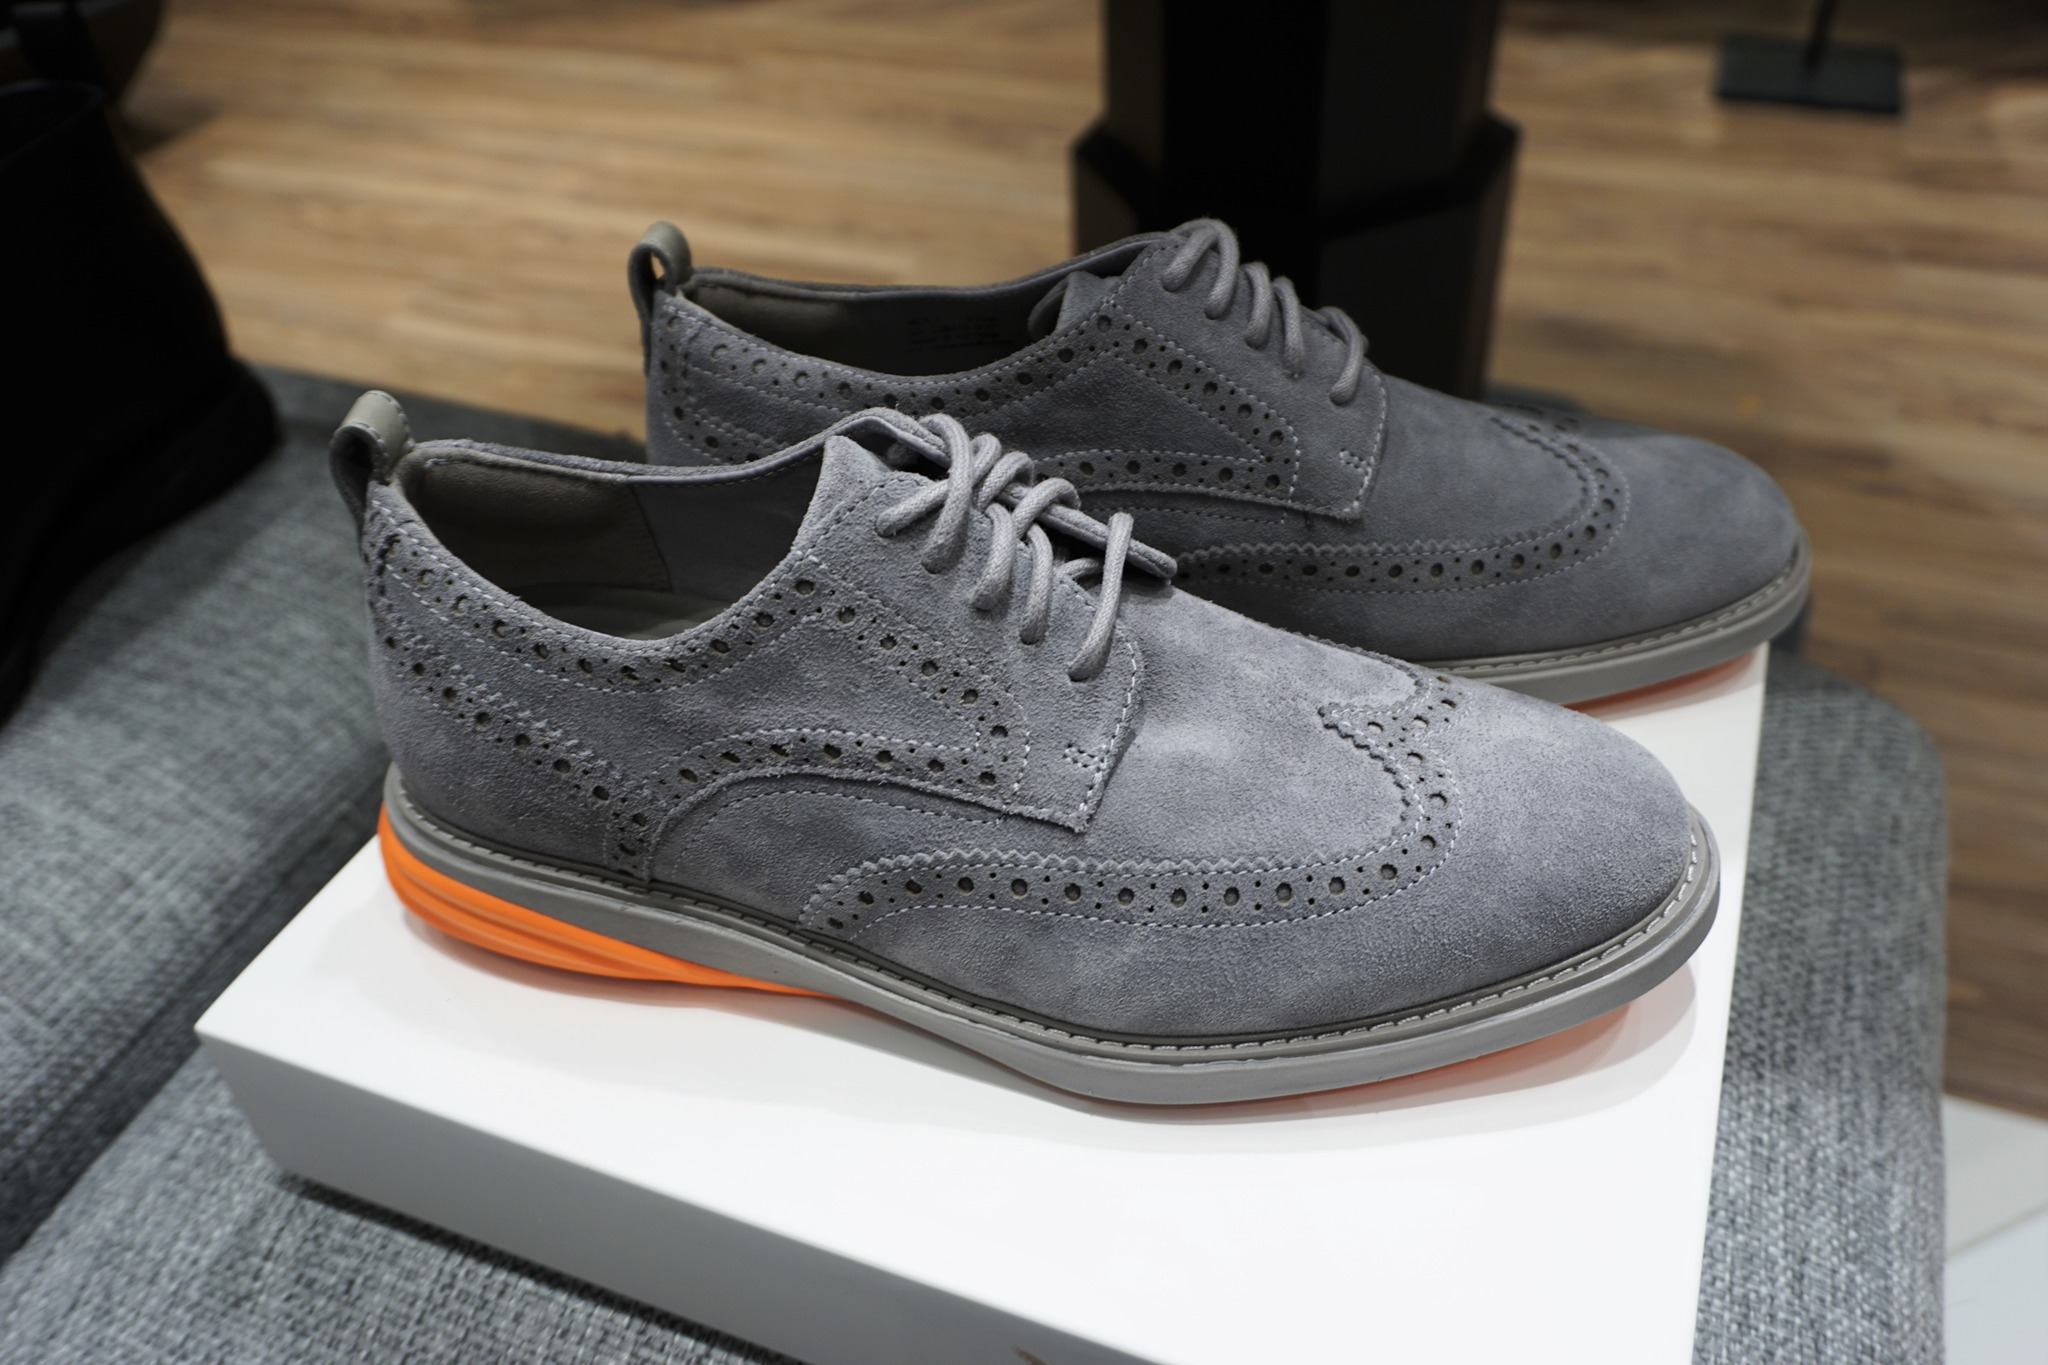 Cole Haan Shoes For Sale Philippines